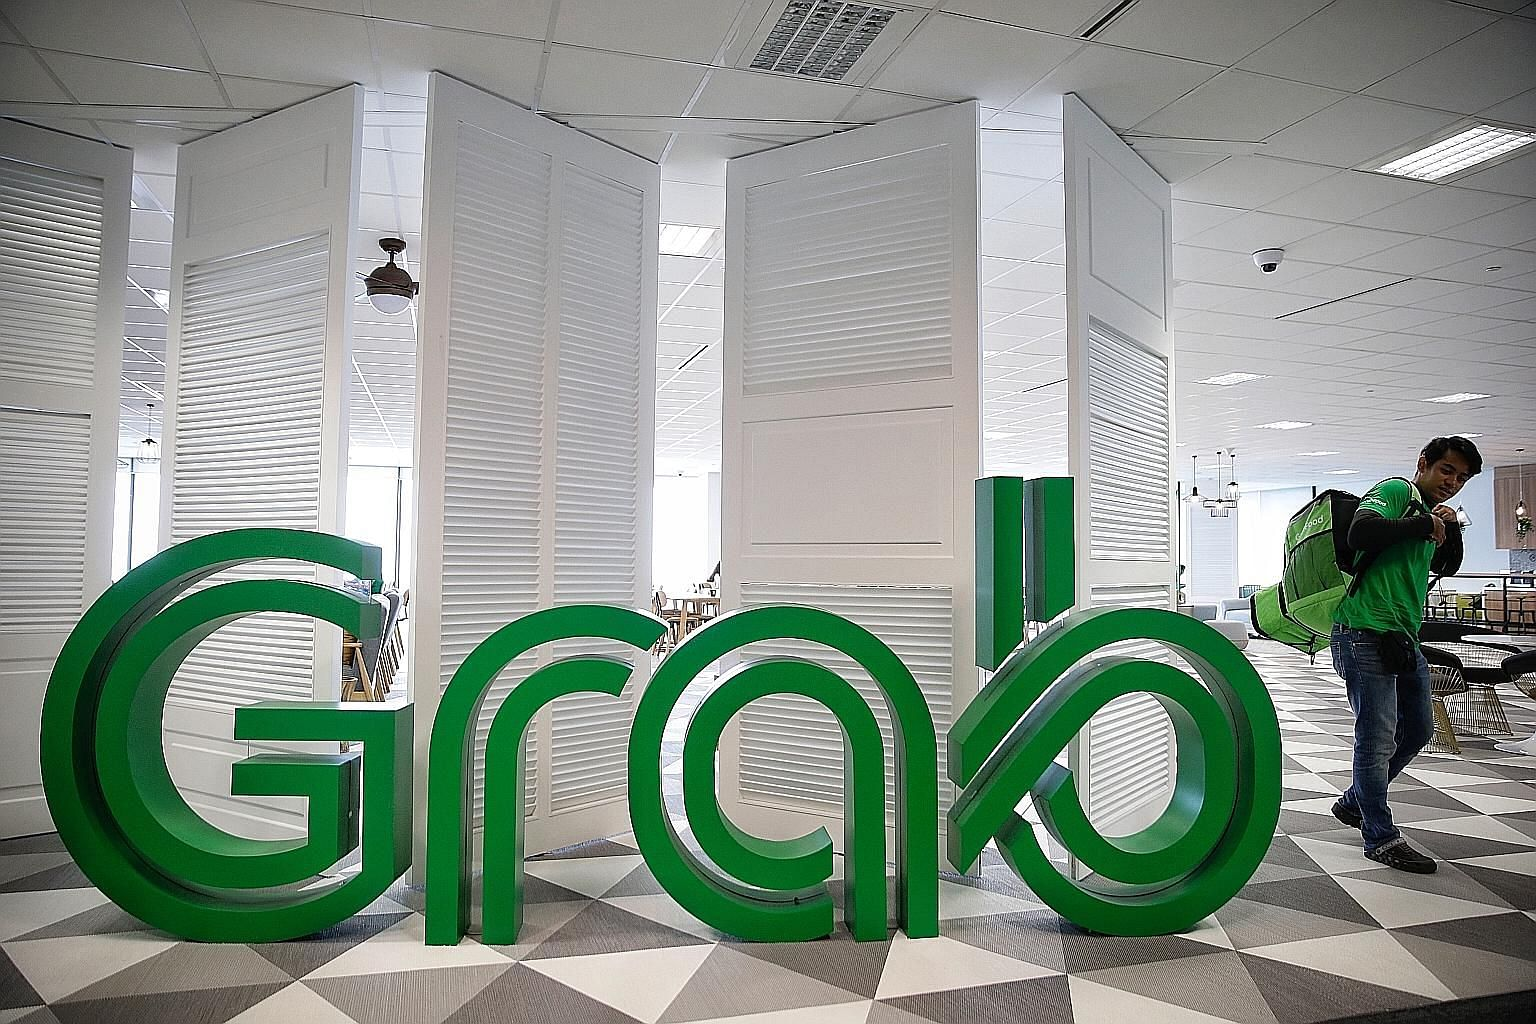 """Grab says that despite disagreeing with parts of the Competition and Consumer Commission of Singapore's findings, it has decided not to appeal because it does not want to have the matter """"drag on""""."""